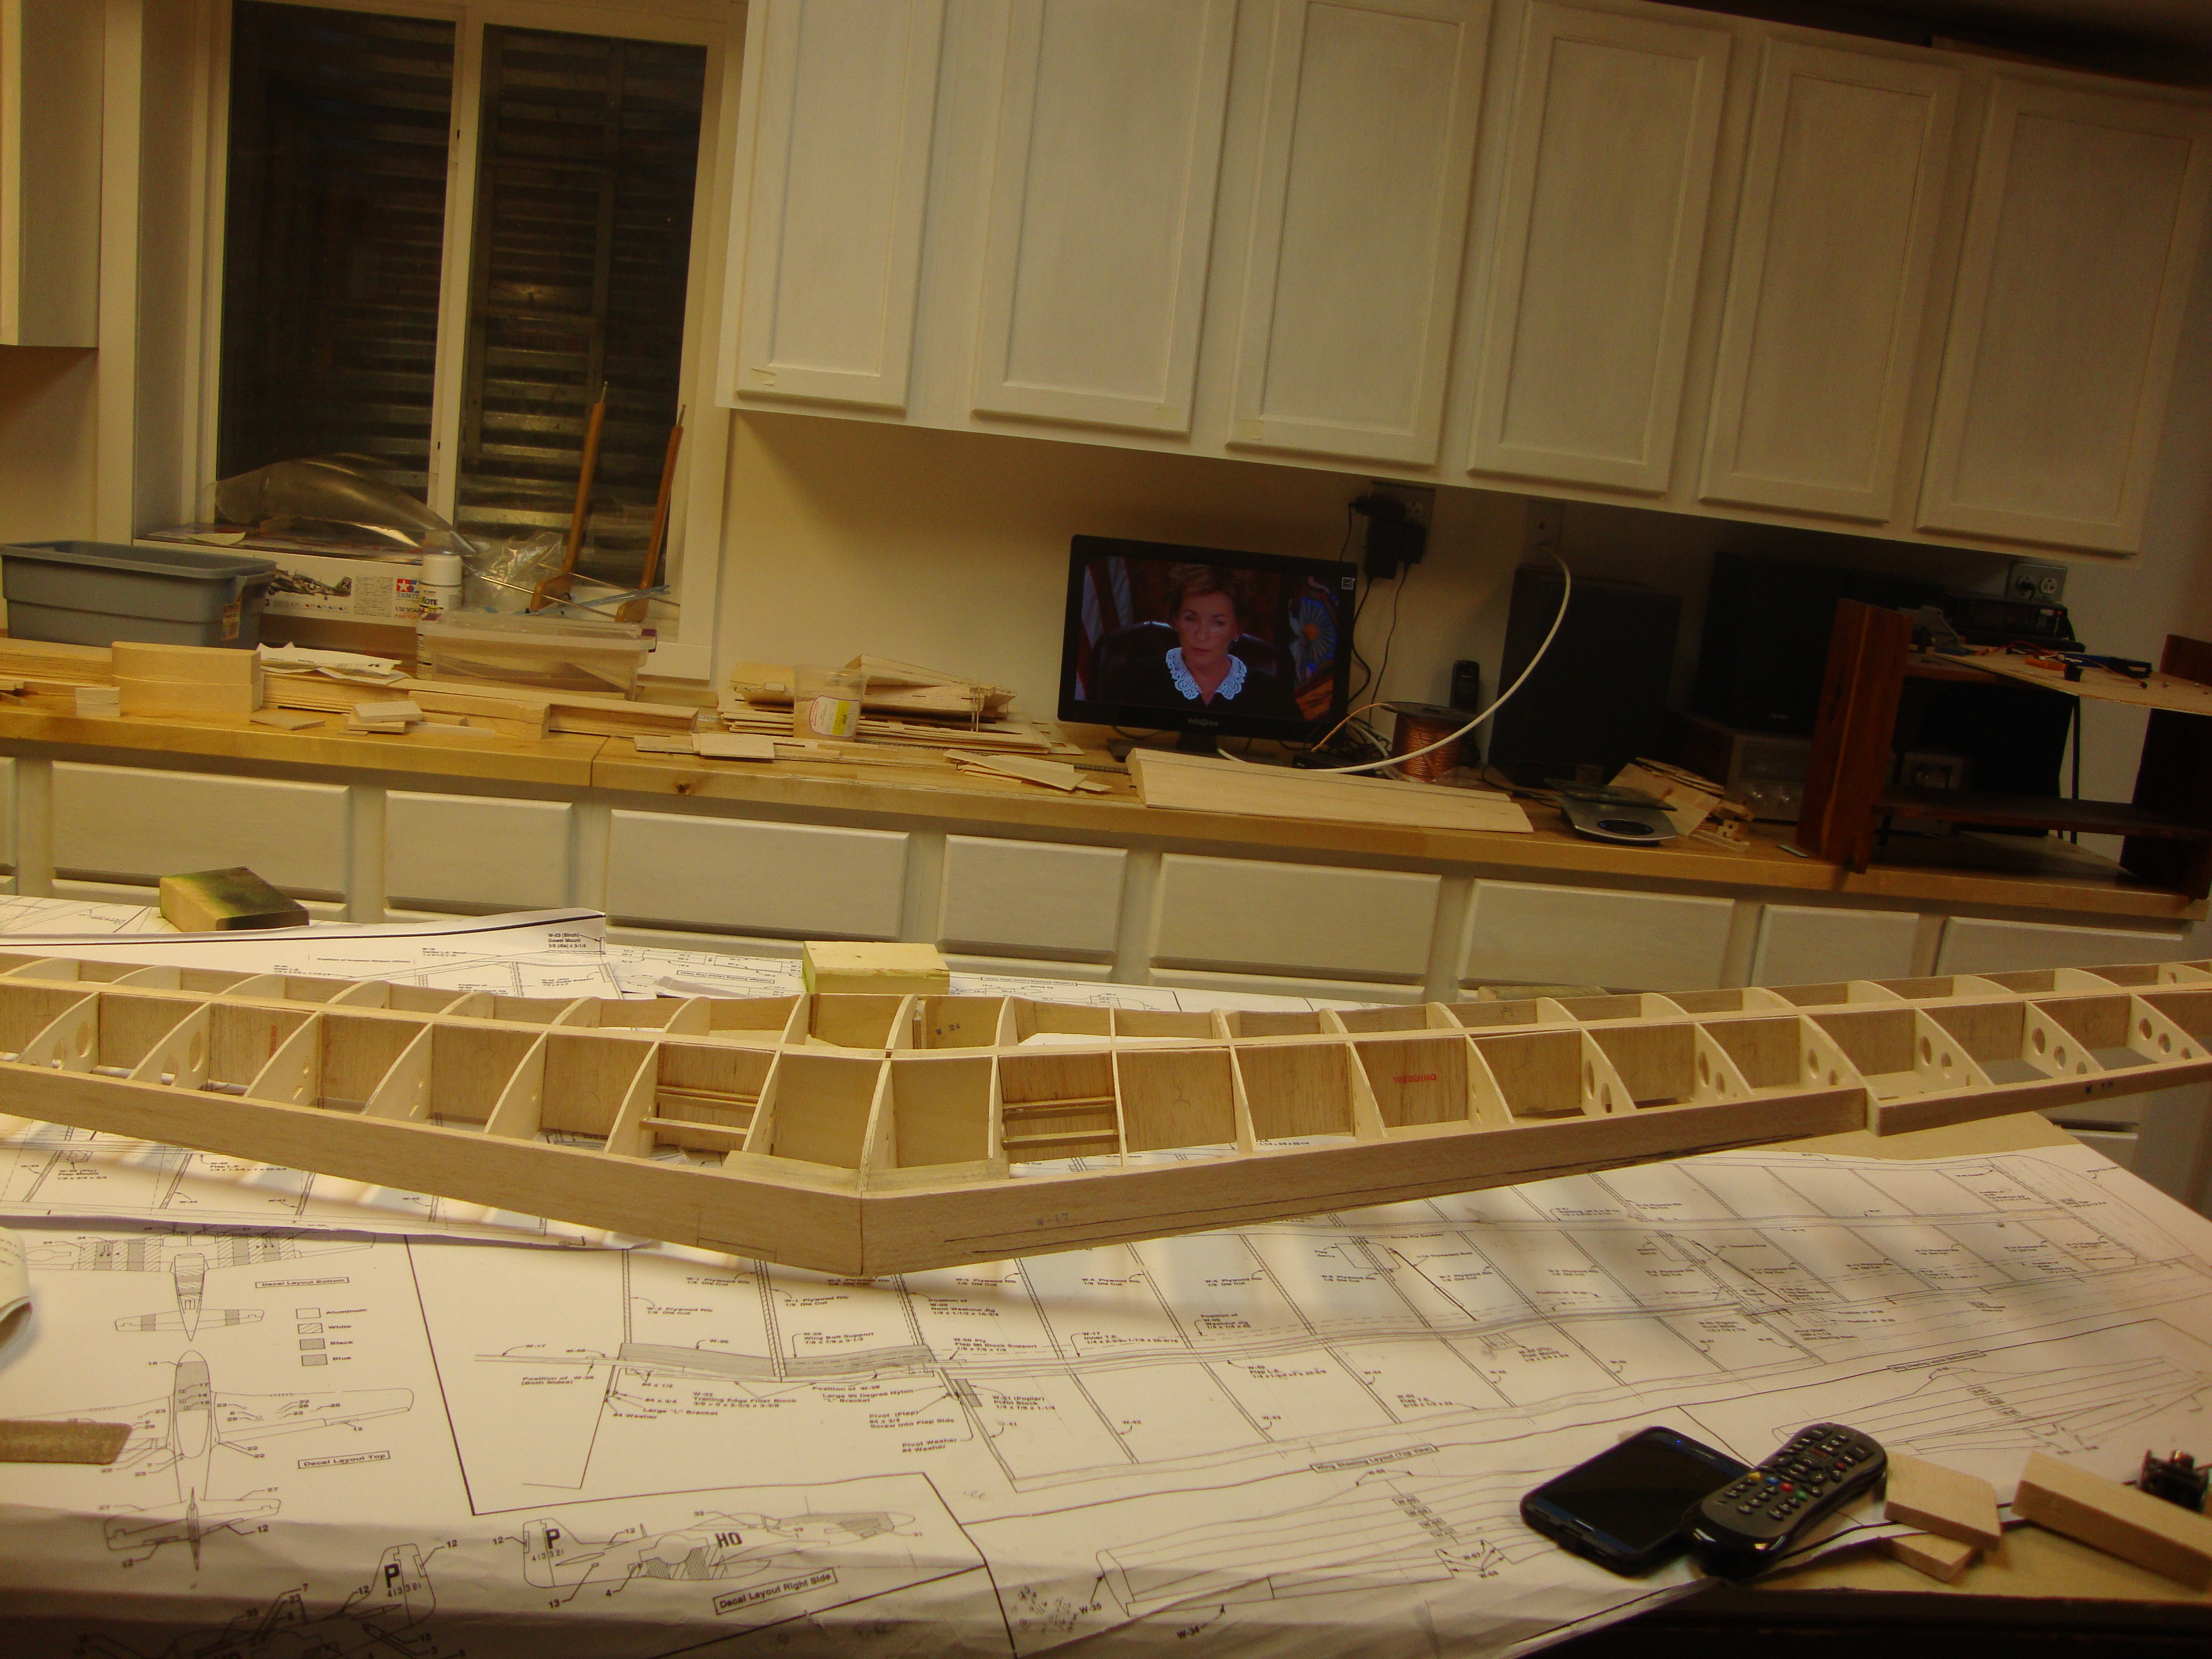 Click image for larger version  Name:S13 Wing Sanded.JPG Views:60 Size:4.18 MB ID:2144976